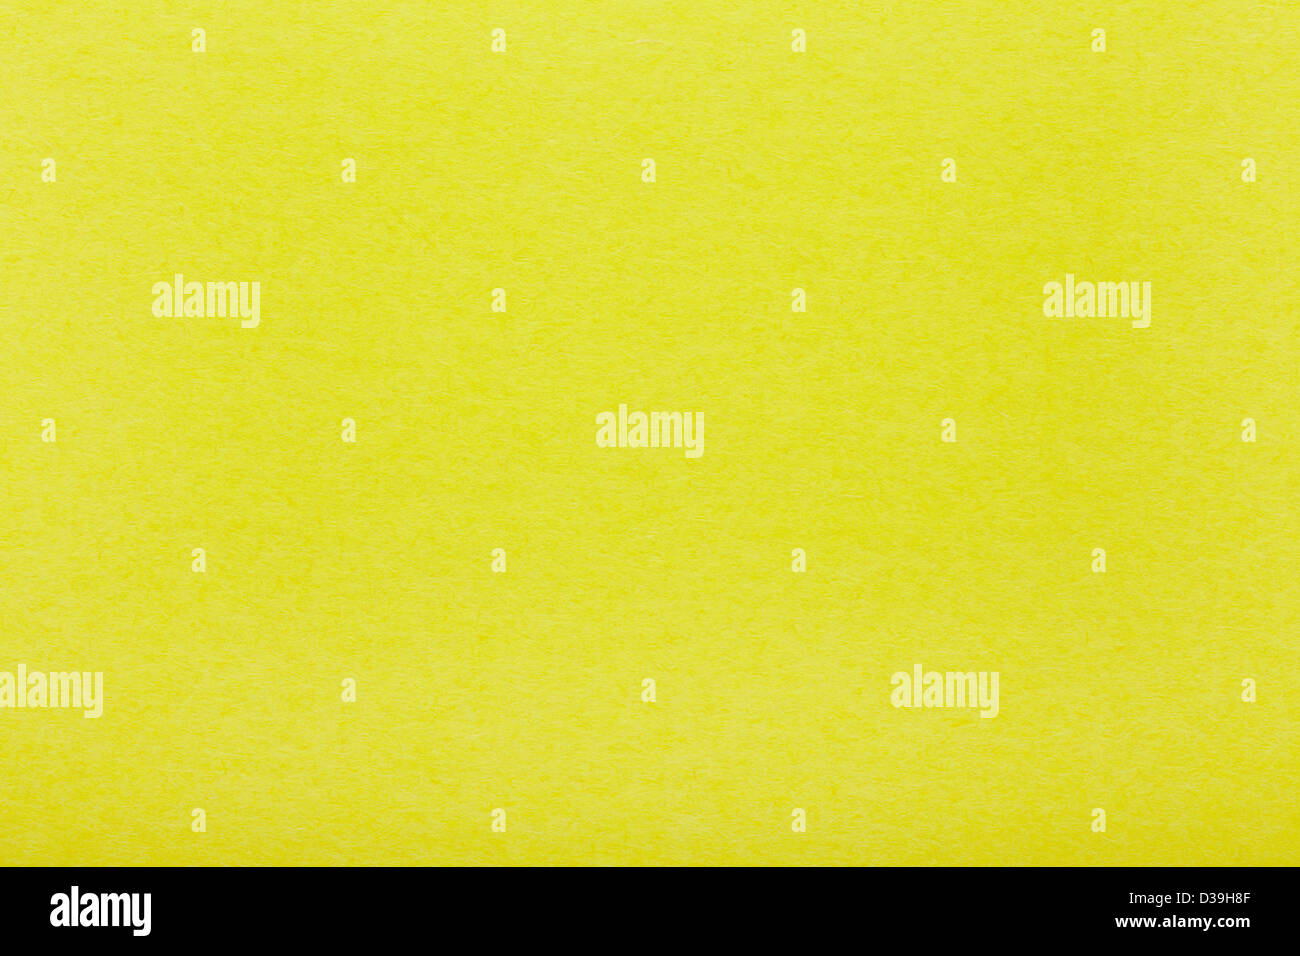 Yellow paper texture background - Stock Image